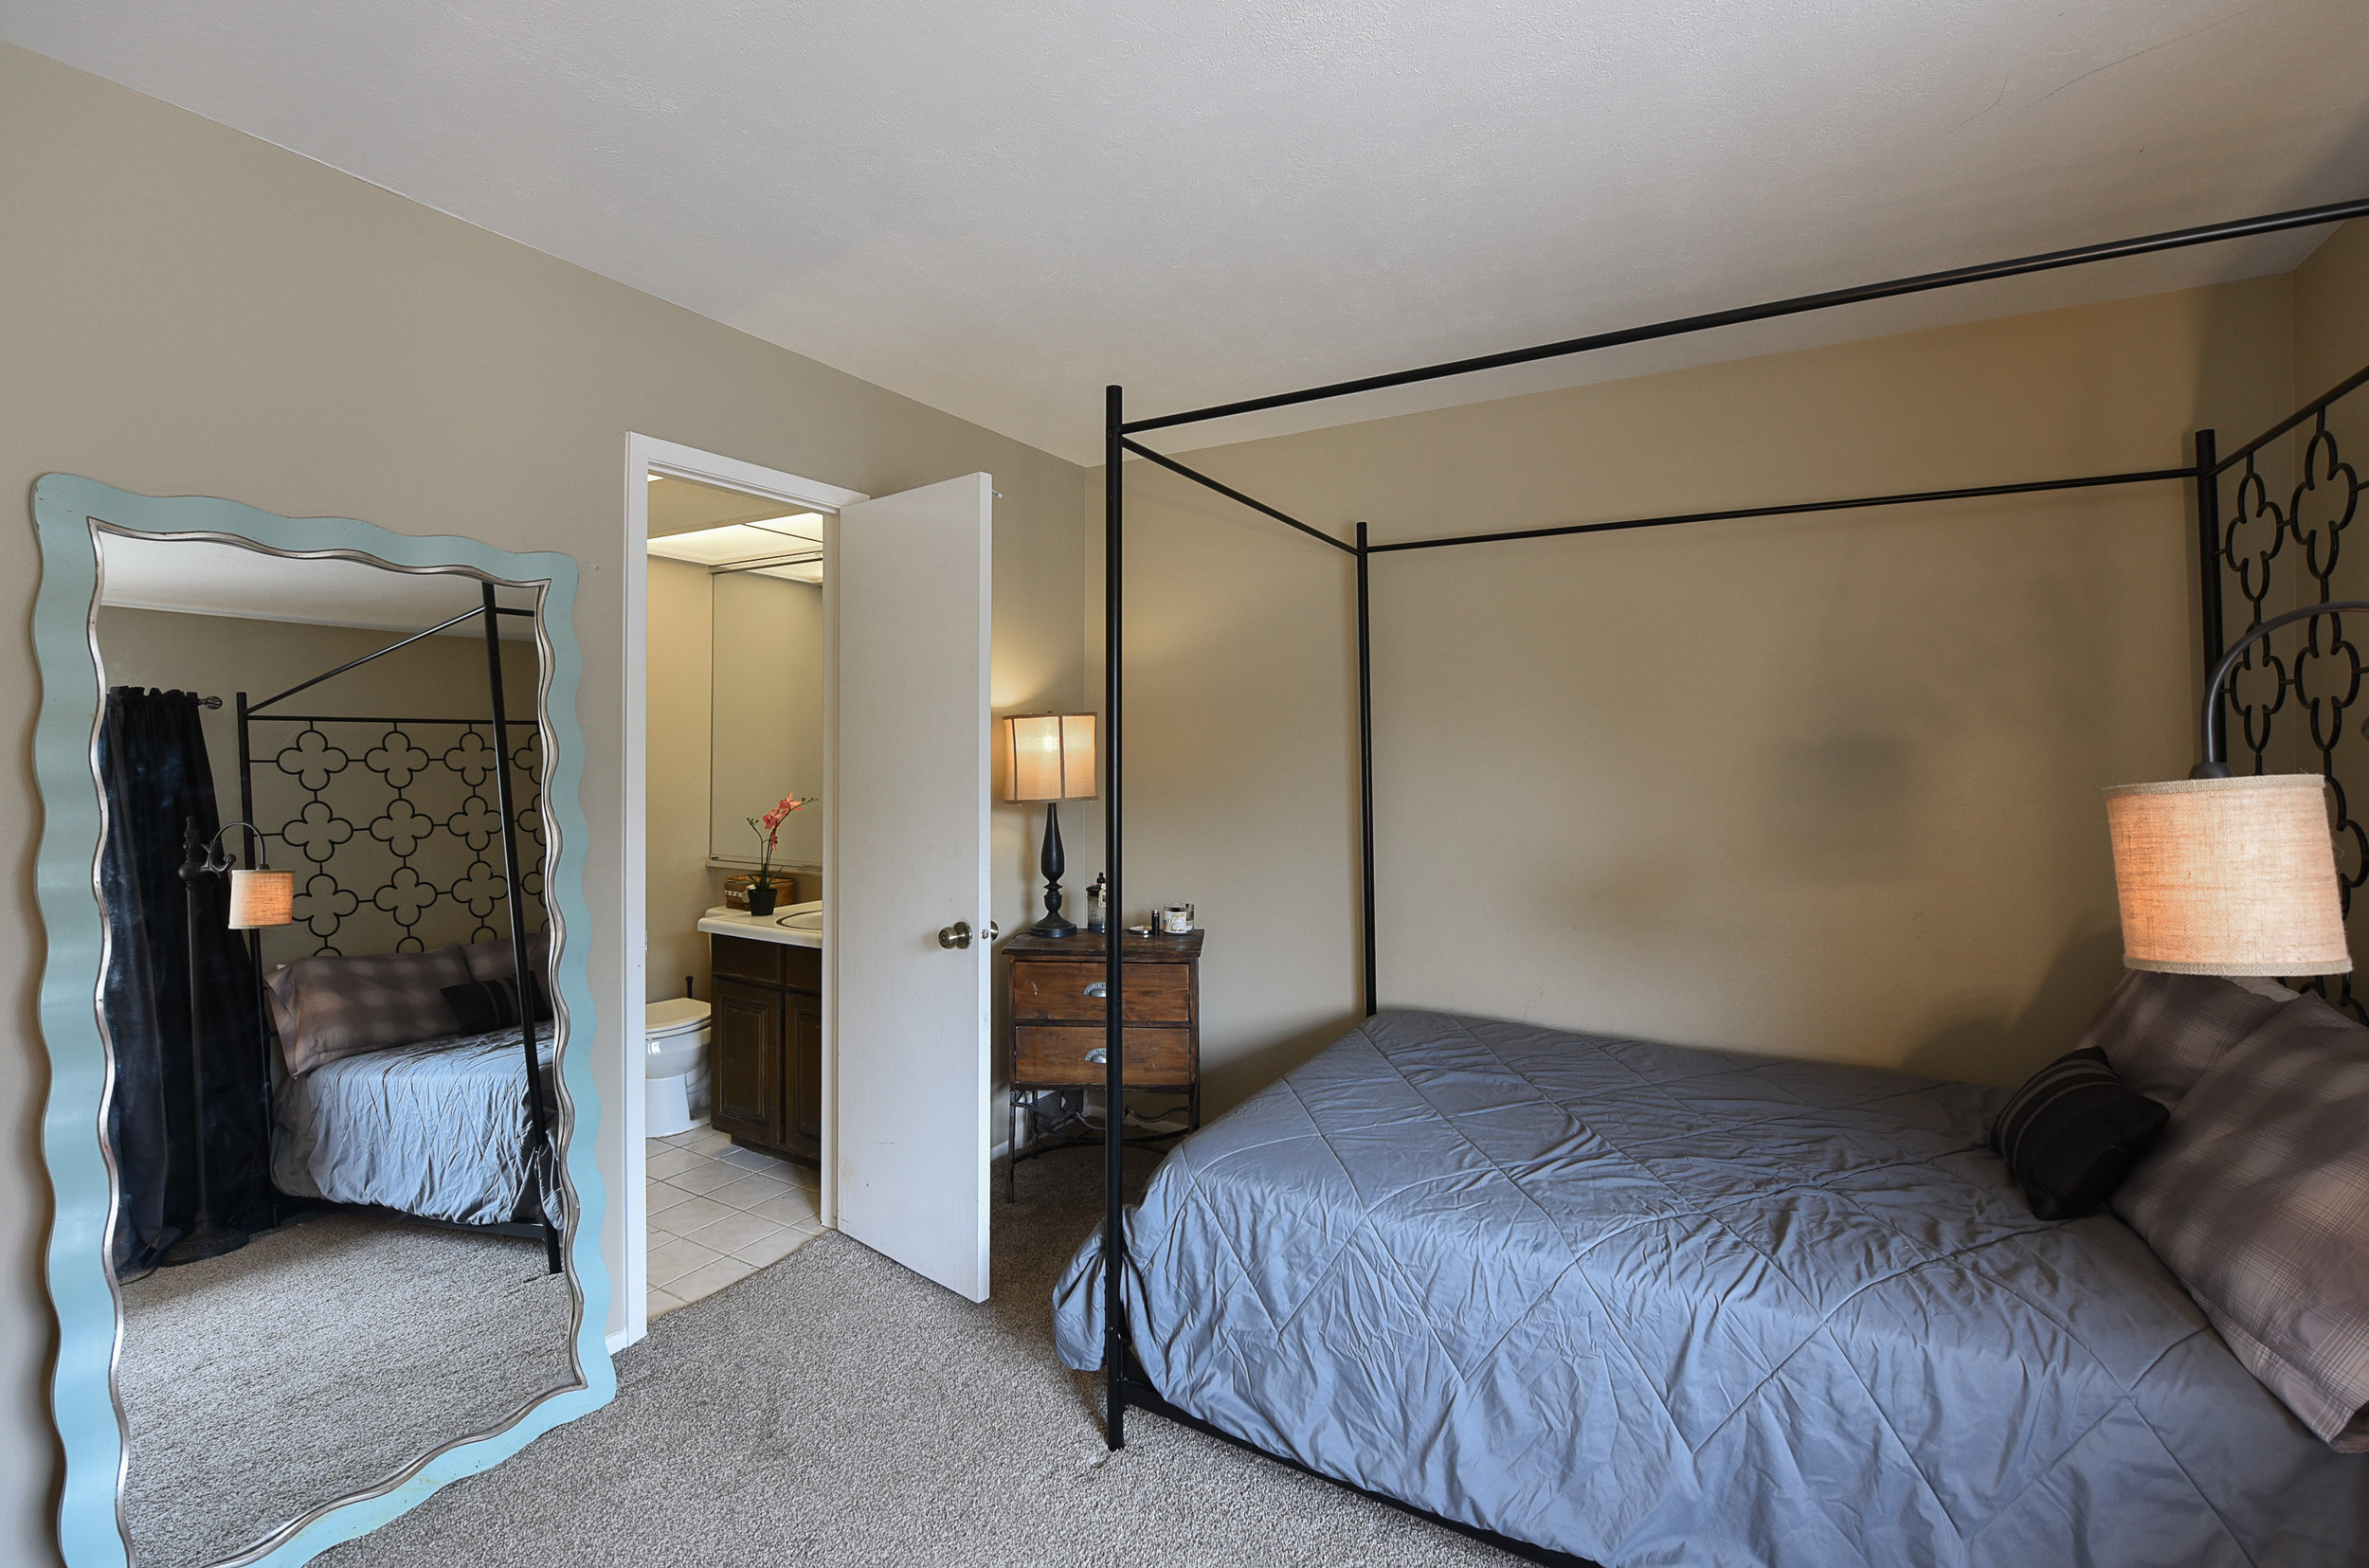 2nd bedroom2.jpg